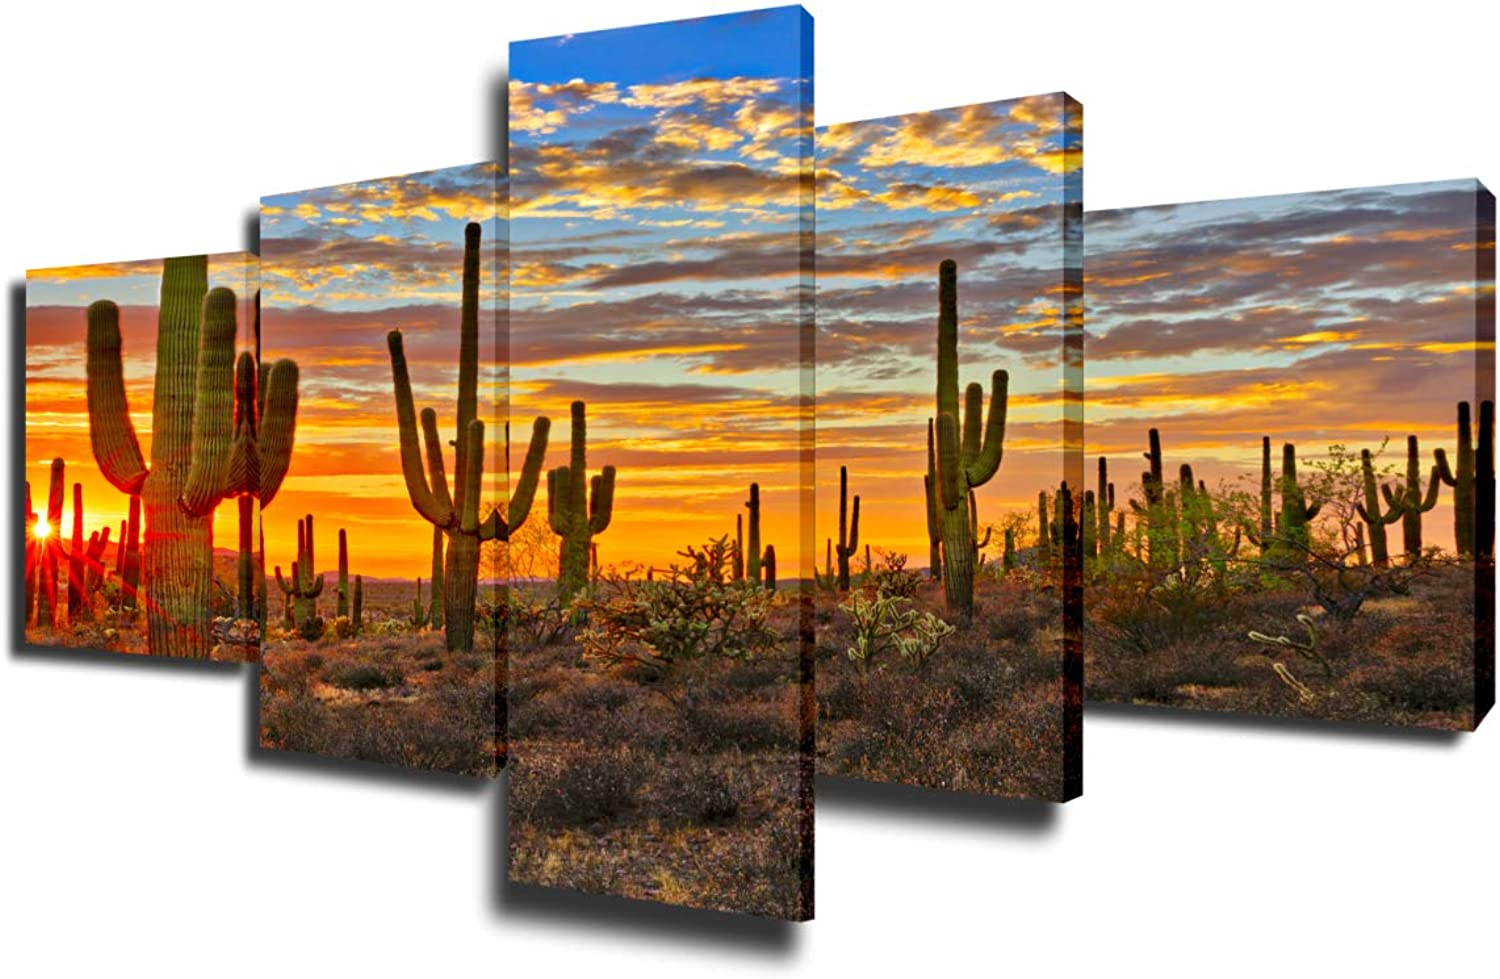 Native America Decor Arizona Desert Paintings for Living Room Saguaro Cacti Mountains Pictures 5 Piece Canvas Wall Art Modern Artwork Framed Gallery-wrapped Stretched Ready to Hang(50''Wx24''H)